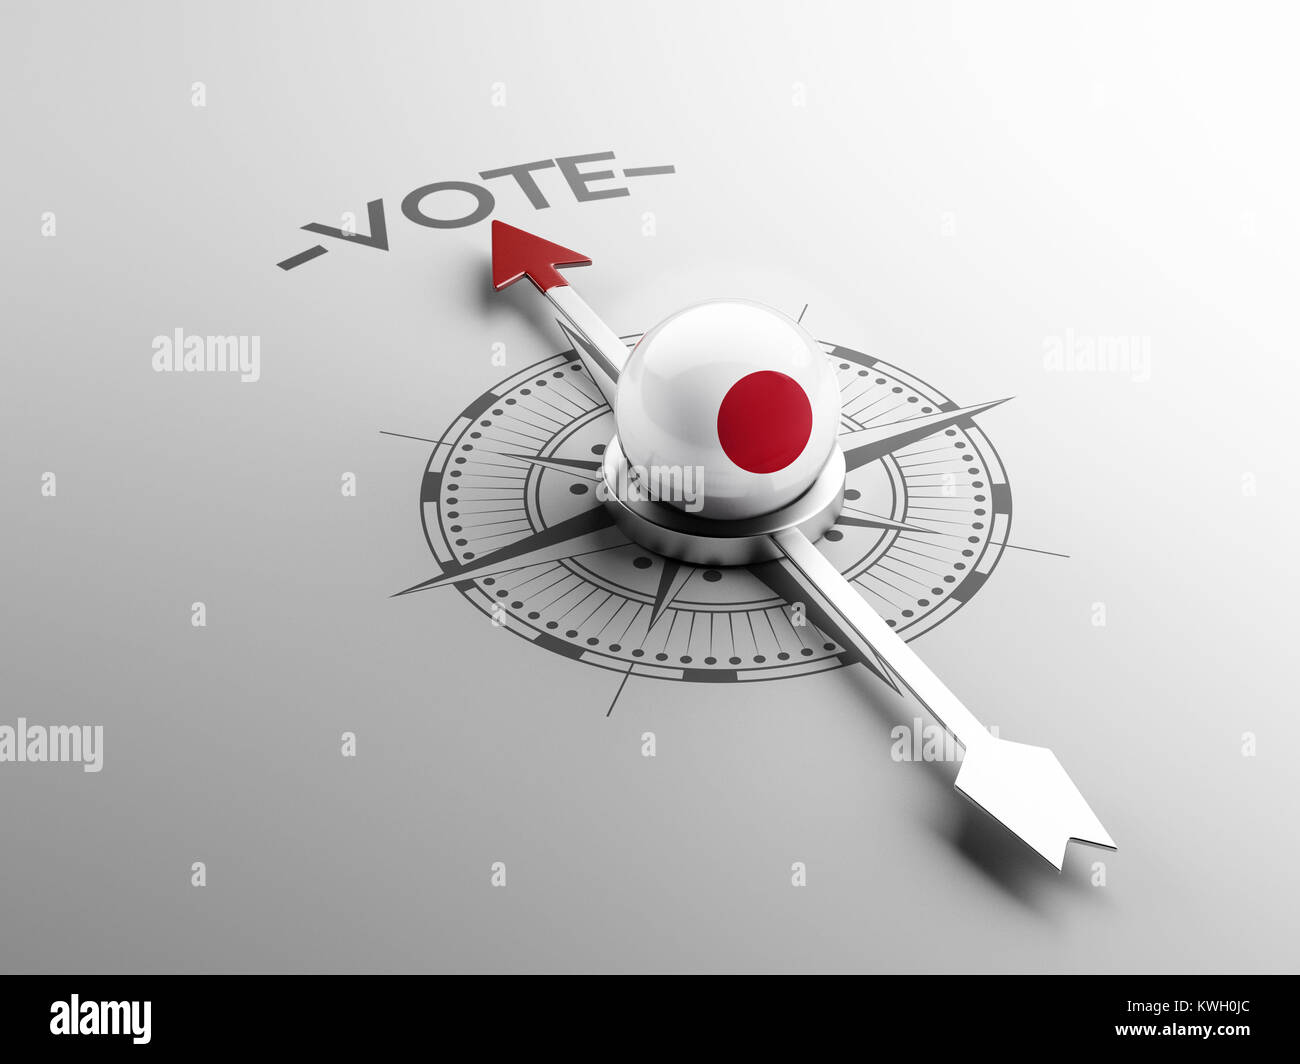 Japan High Resolution Vote Concept Stock Photo